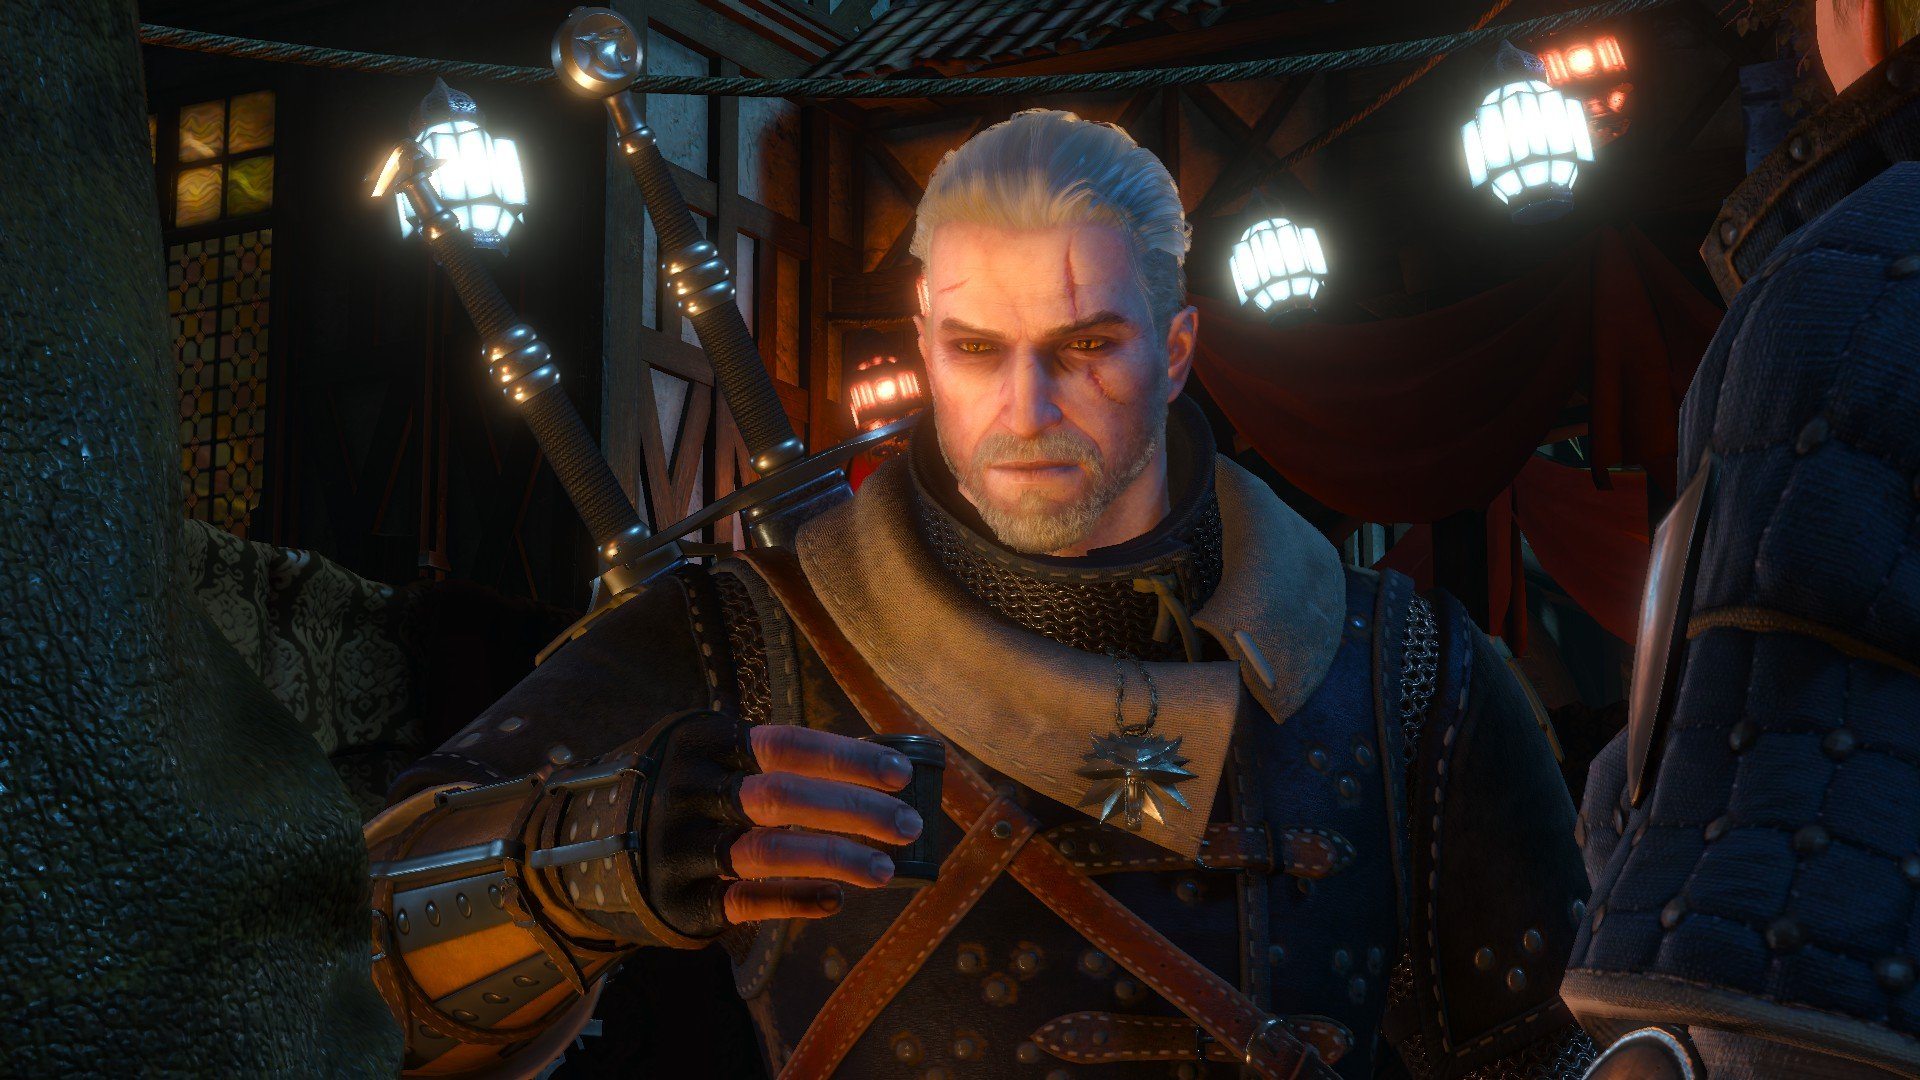 The Witcher 3: Wild Hunt. Патч 1.07. Полный список изменений.    Новые альтернативные движения Геральта  Добавлены м ... - Изображение 12